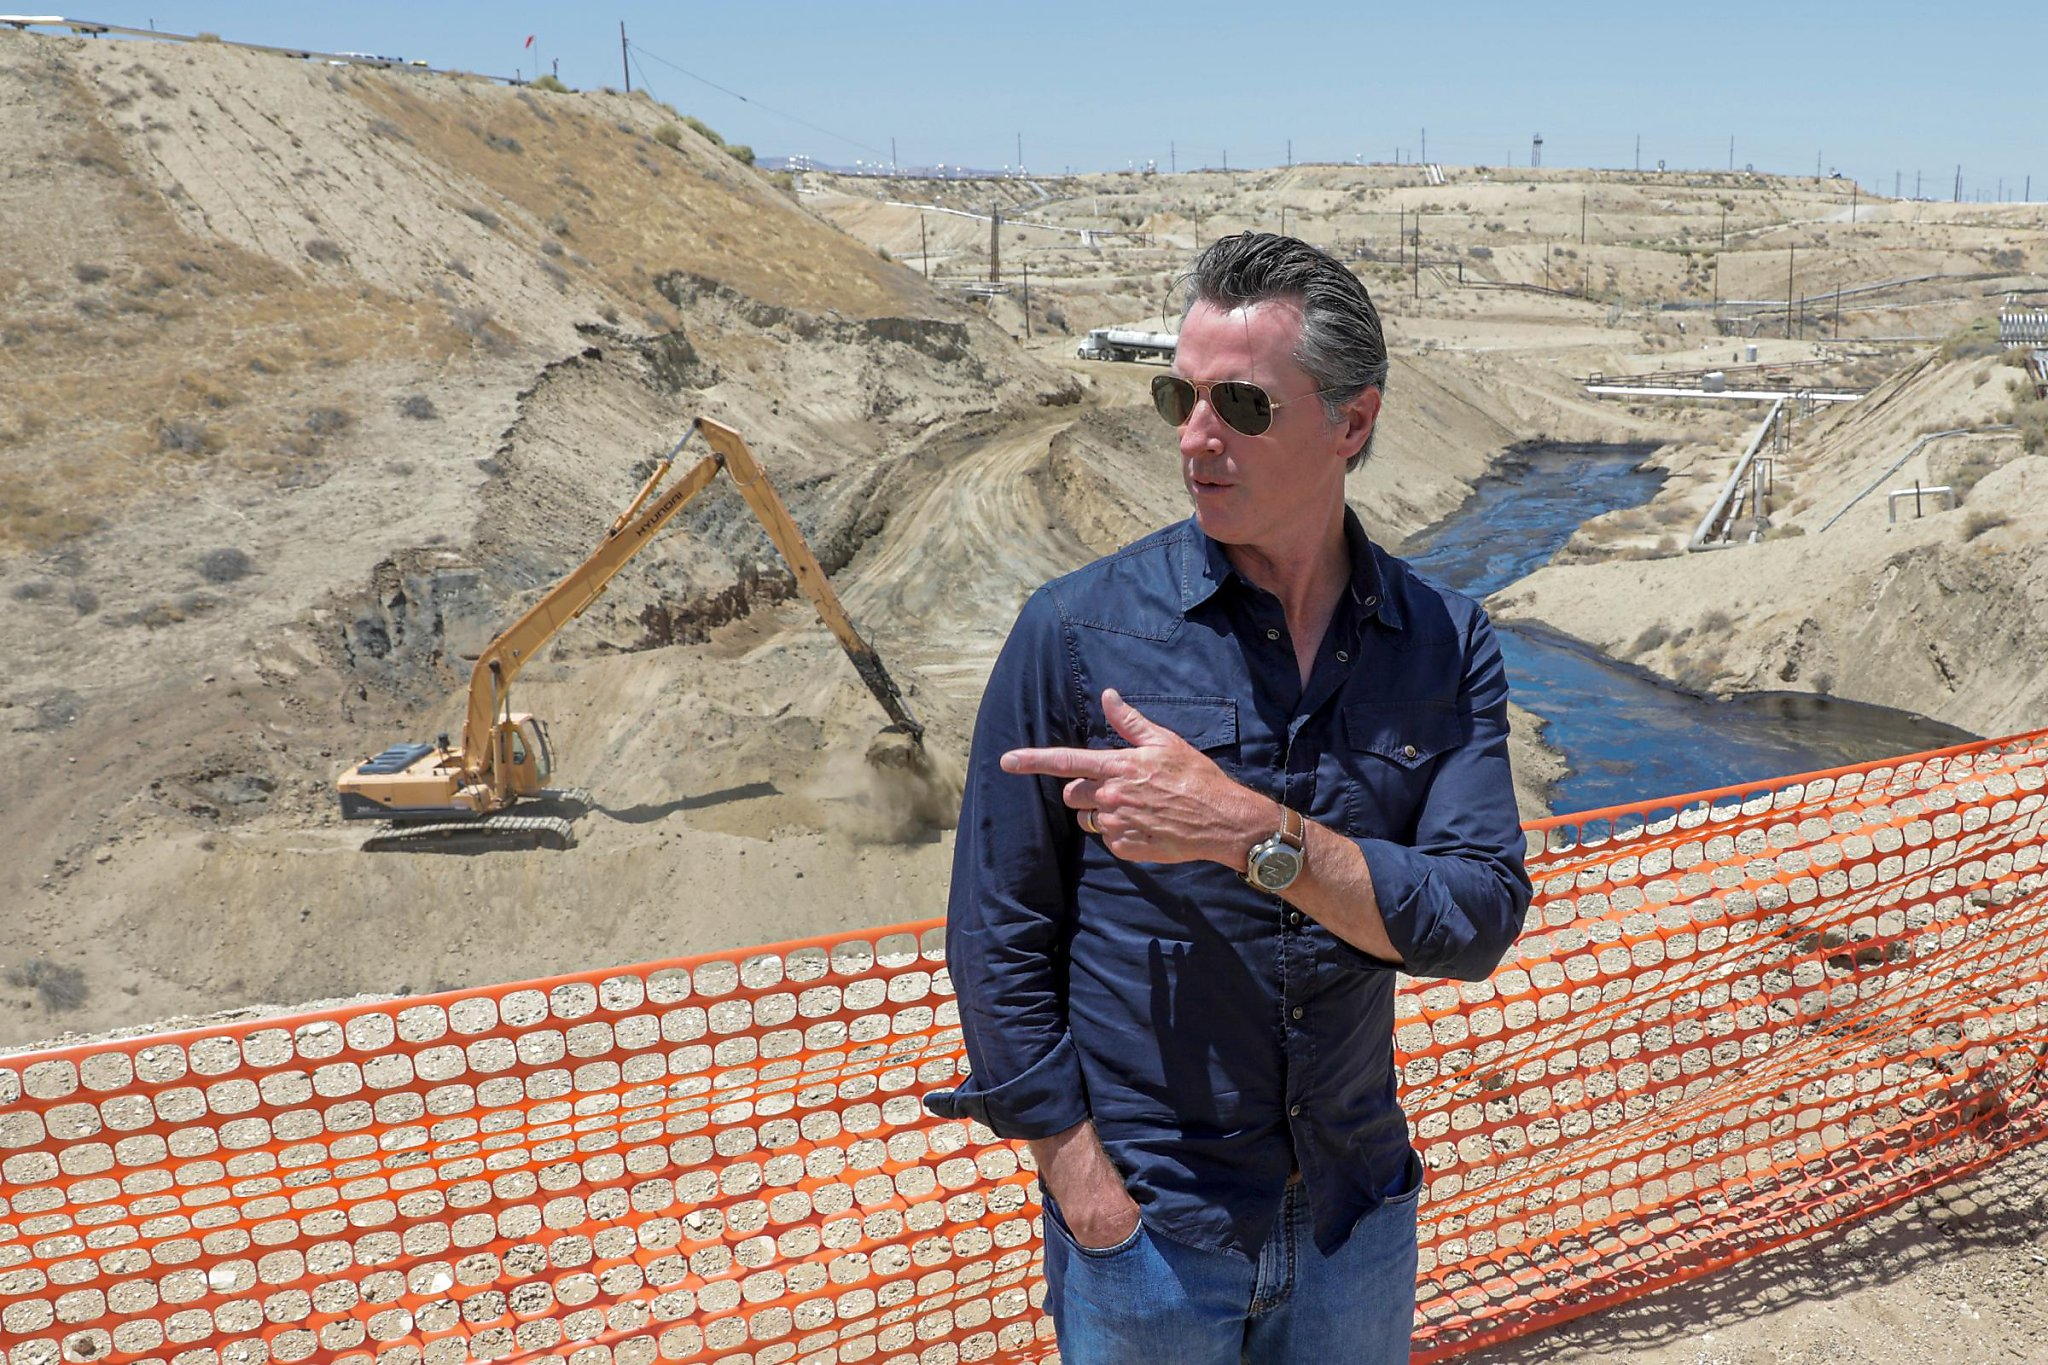 Gavin Newsom's environmental budget cuts escalate tensions with California activists